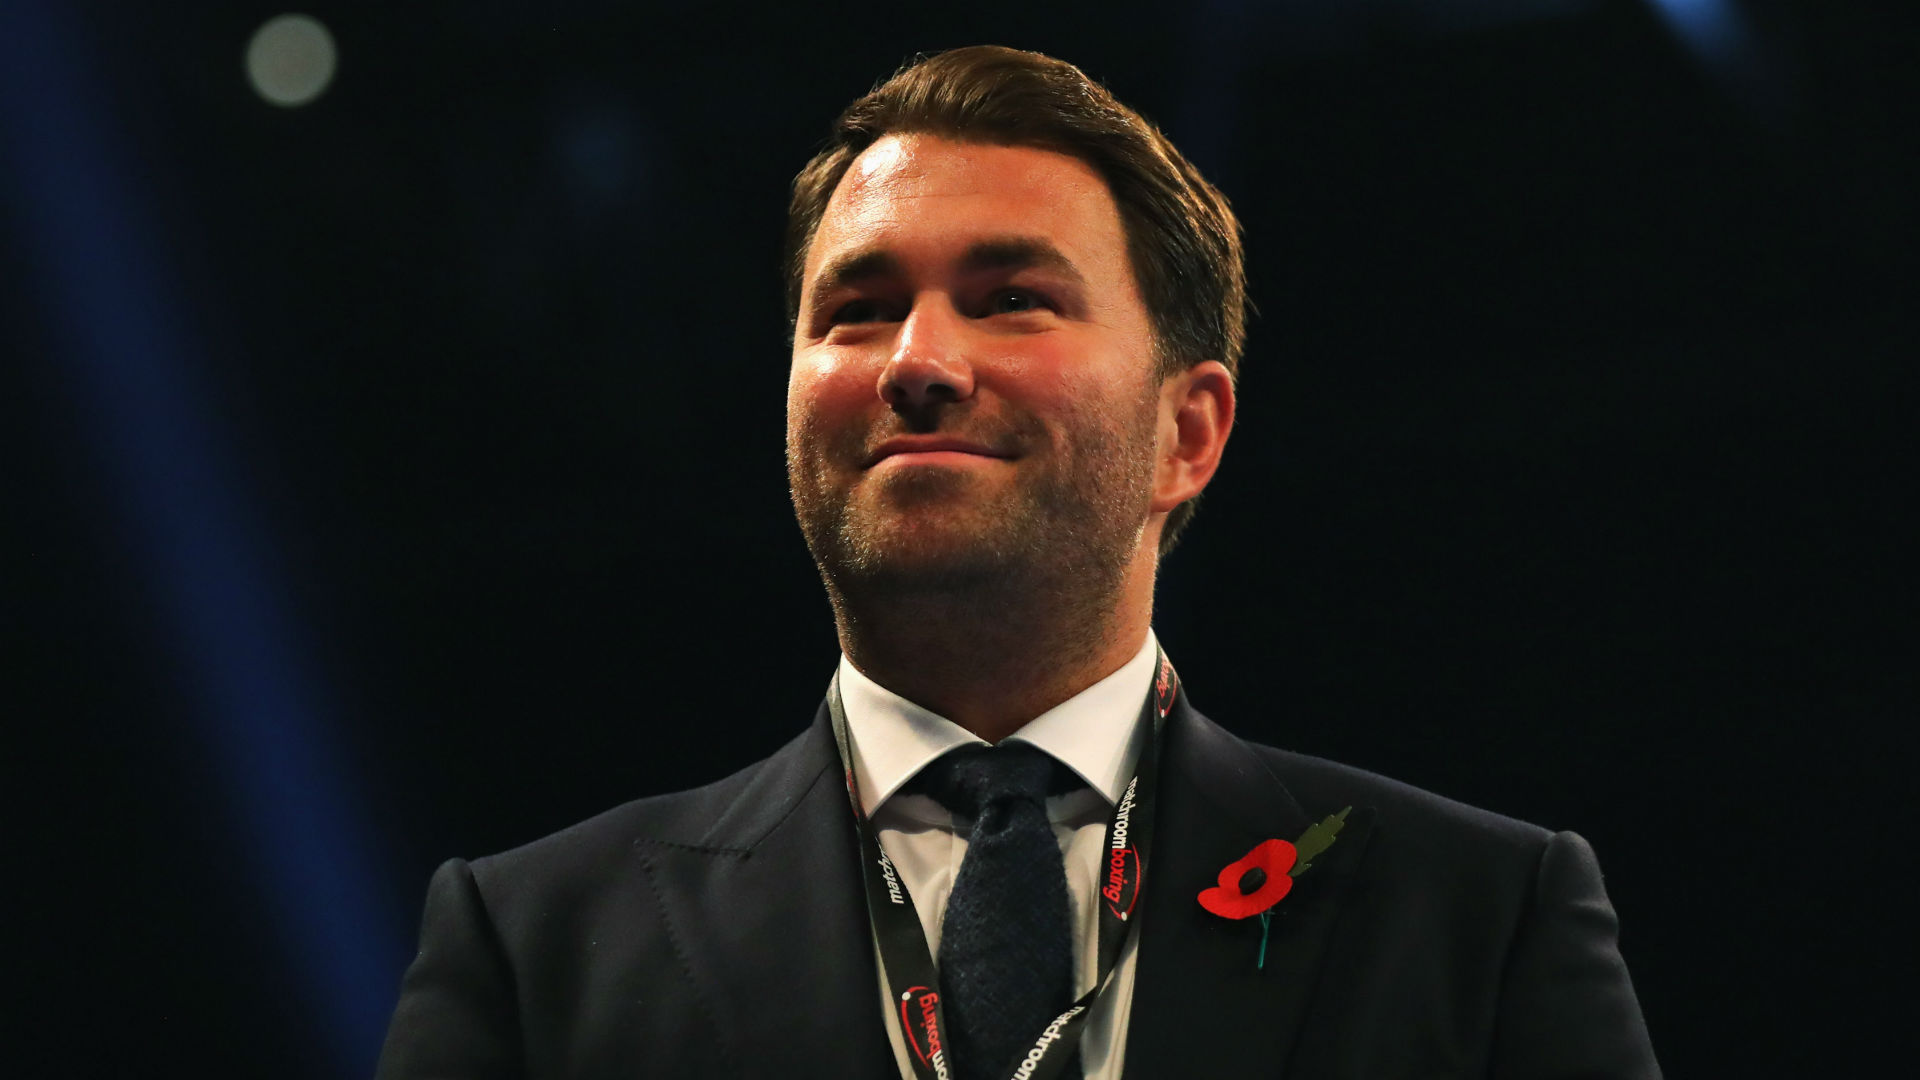 Eddie Hearn talks billion-dollar boxing deal between Matchroom, Perform